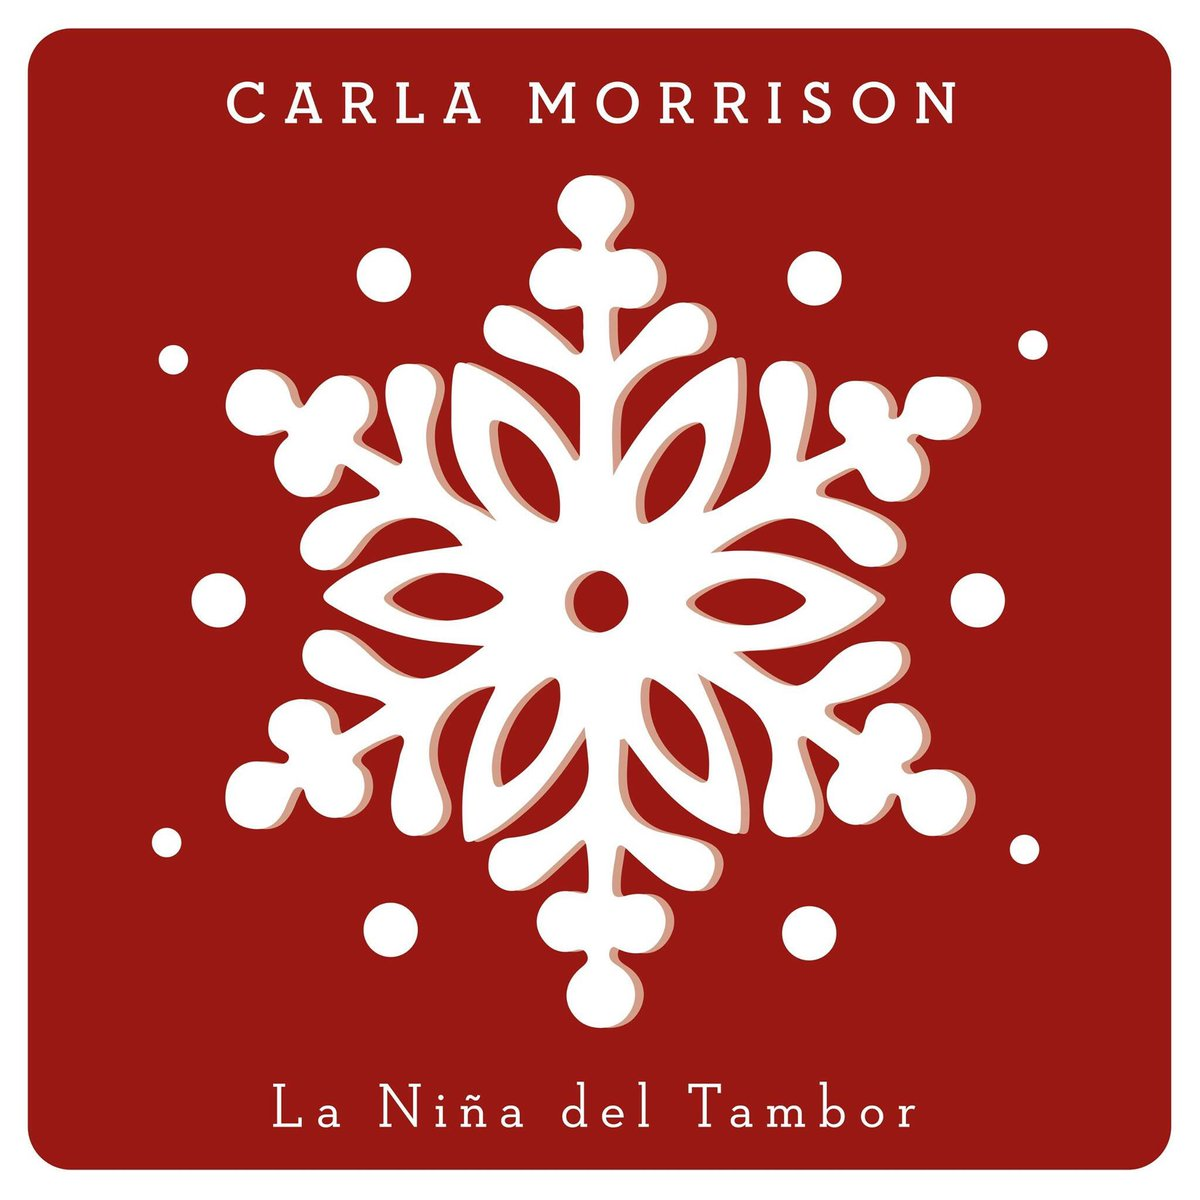 4 days for the release of the @CarlaMorrisonmx #Christmas album, #LaNiñaDelTambor! https://t.co/fPxpqccmST